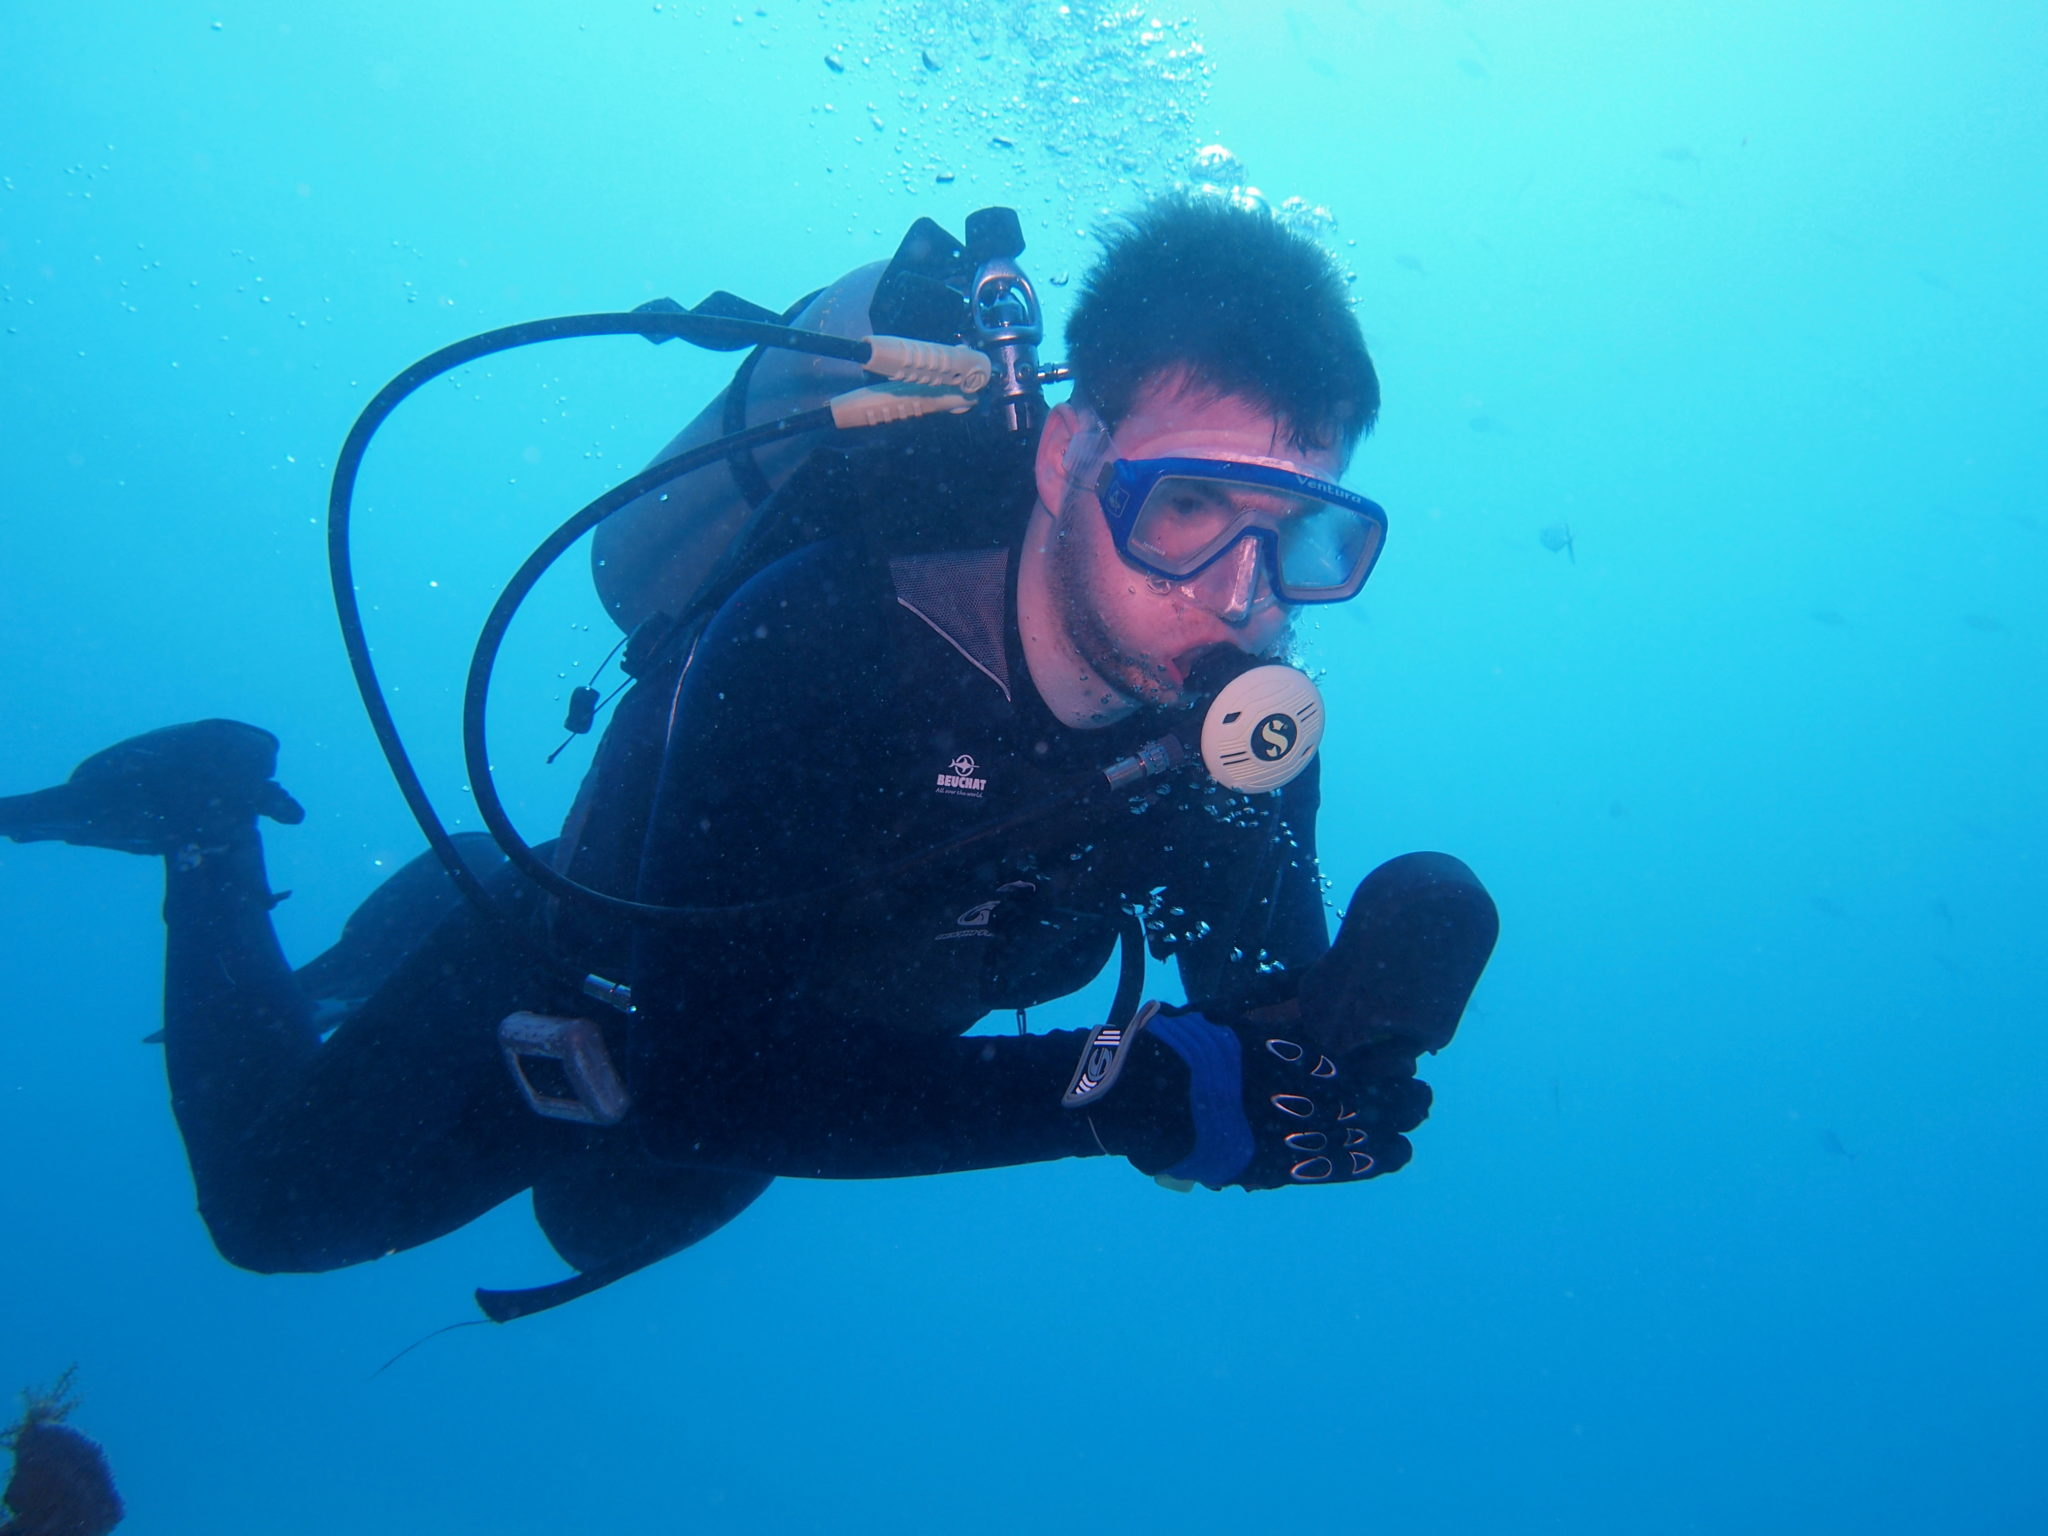 3 Things I Wish I Learned Earlier About Buoyancy